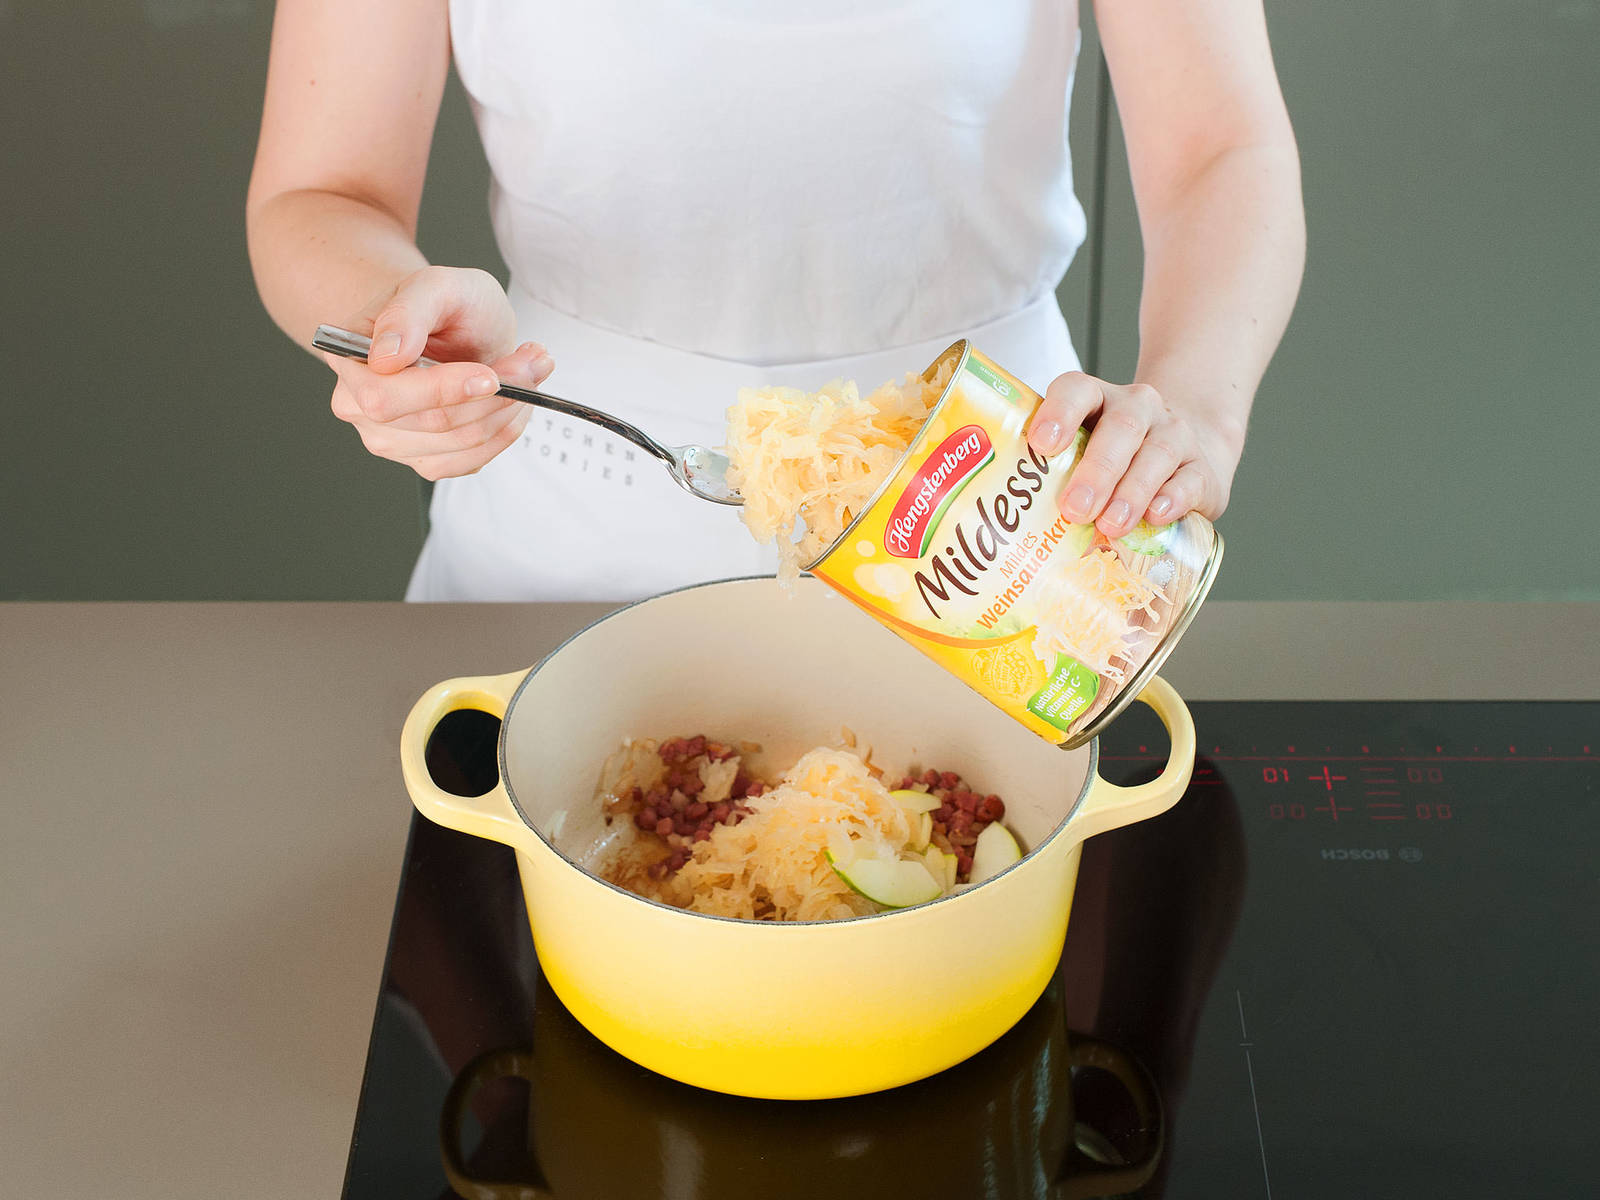 In a small saucepan, cook bacon over medium-high heat for approx. 1 – 2 min. Add onion and apples, and continue to cook for another approx. 2 – 3 min. Next, add sauerkraut, juniper berries, caraway seeds, bay leaf, and white wine. Season to taste with salt and pepper. Stir thoroughly. Reduce heat to low and cook uncovered for approx. 20 min. Remove juniper berries and bay leaf. Drain sauerkraut thoroughly and set aside.